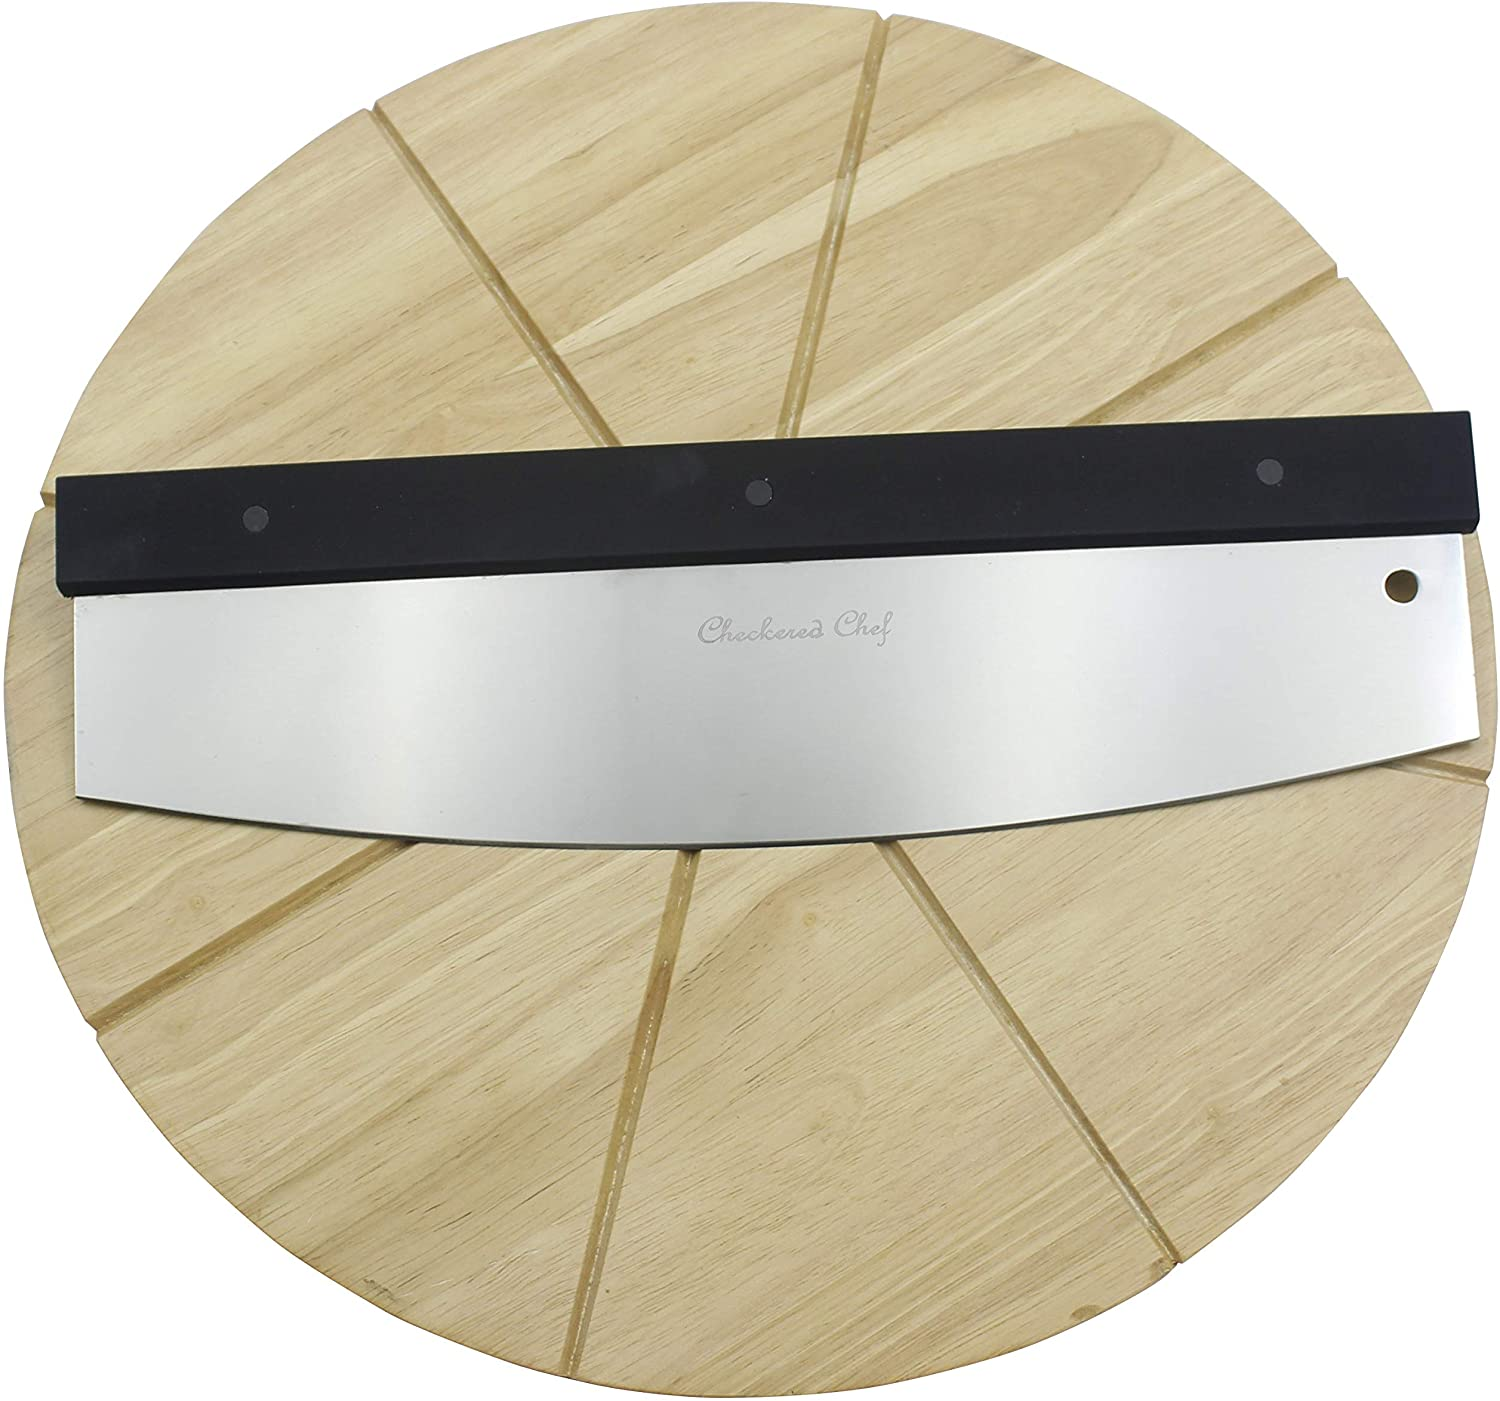 Checkered Chef Premium New products, world's highest quality popular! Pizza Cutter and Board - Recommended Set Rock Cutting